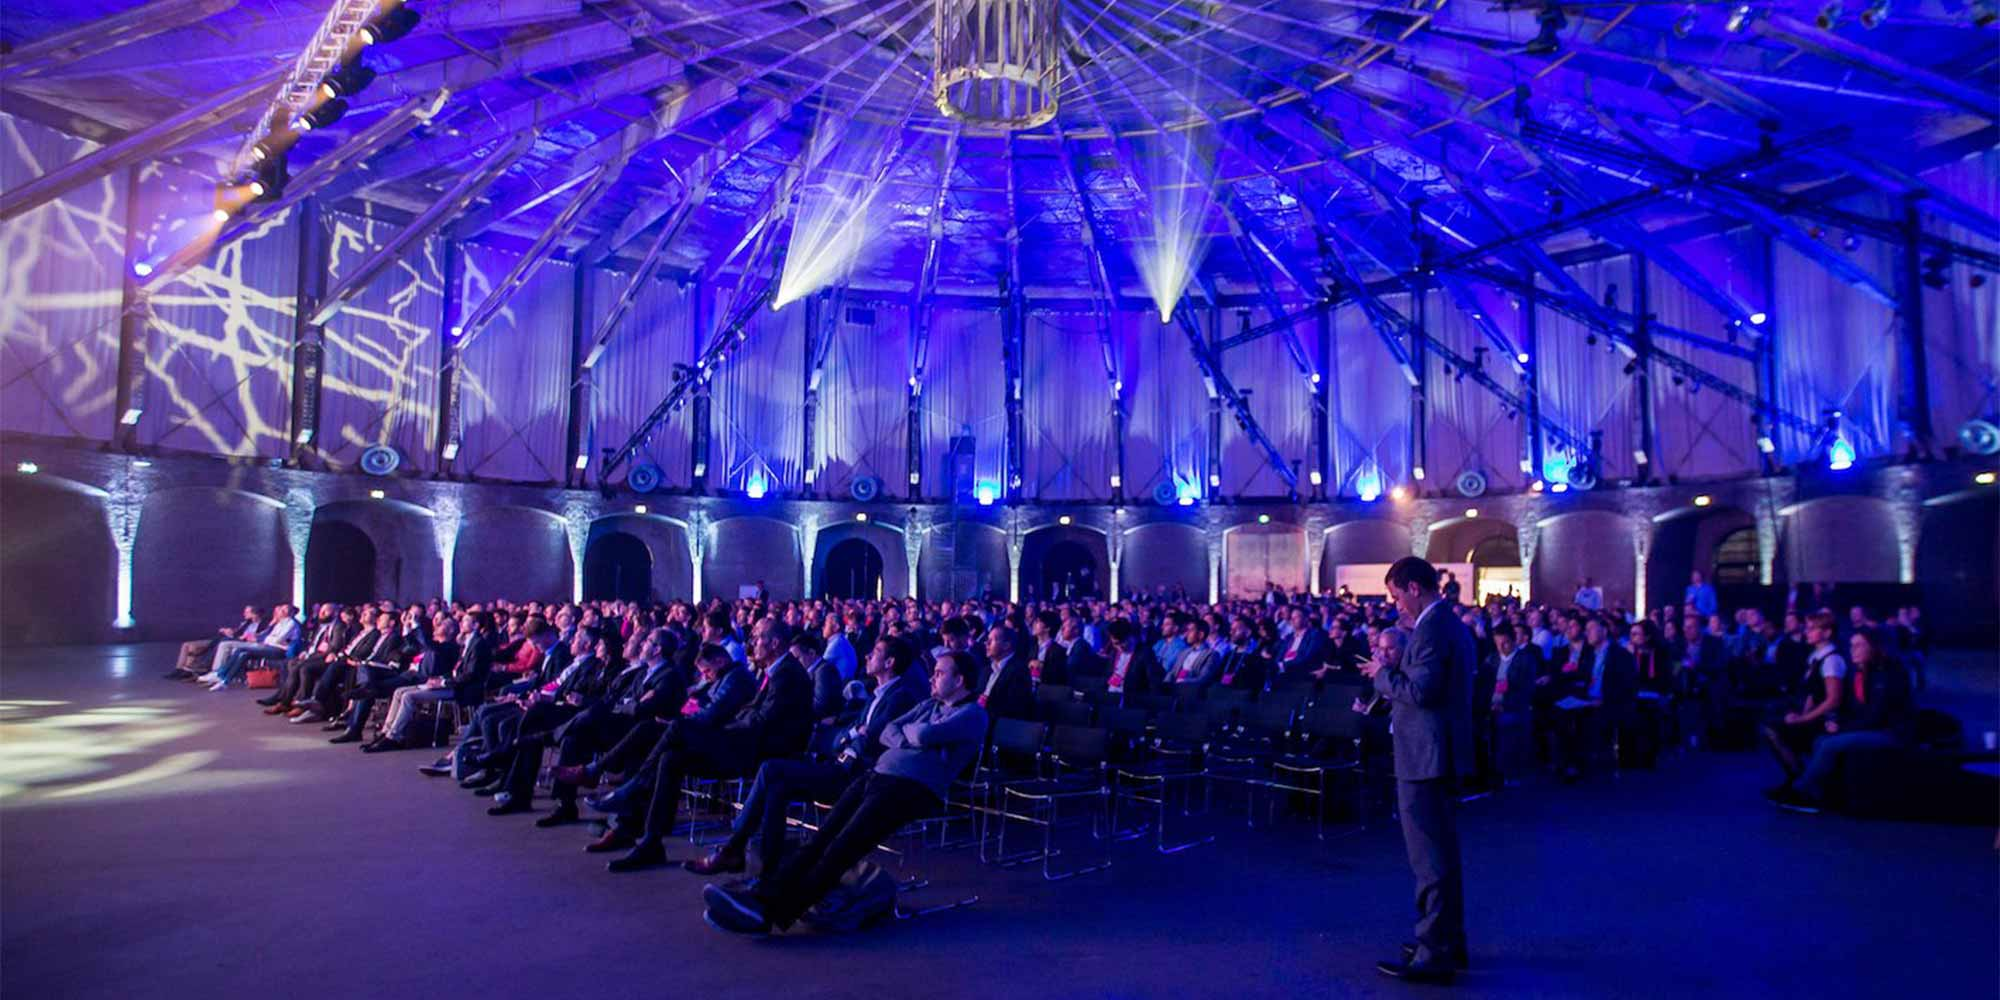 The audience at the Digital Insurance Agenda Amsterdam 2019